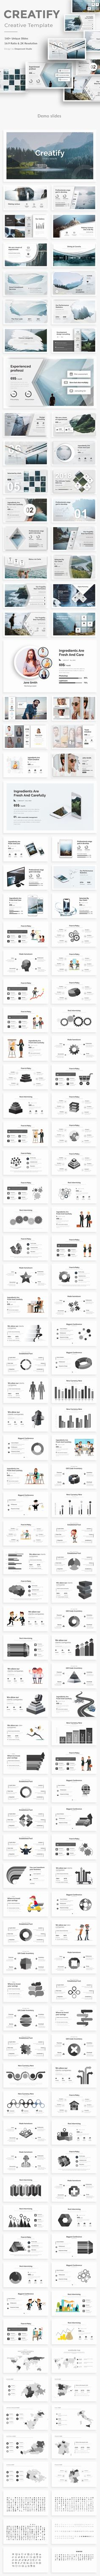 Creatify Creative Keynote Template - Creative Keynote Templates Download link: https://graphicriver.net/item/creatify-creative-keynote-template/22071378?ref=KlitVogli